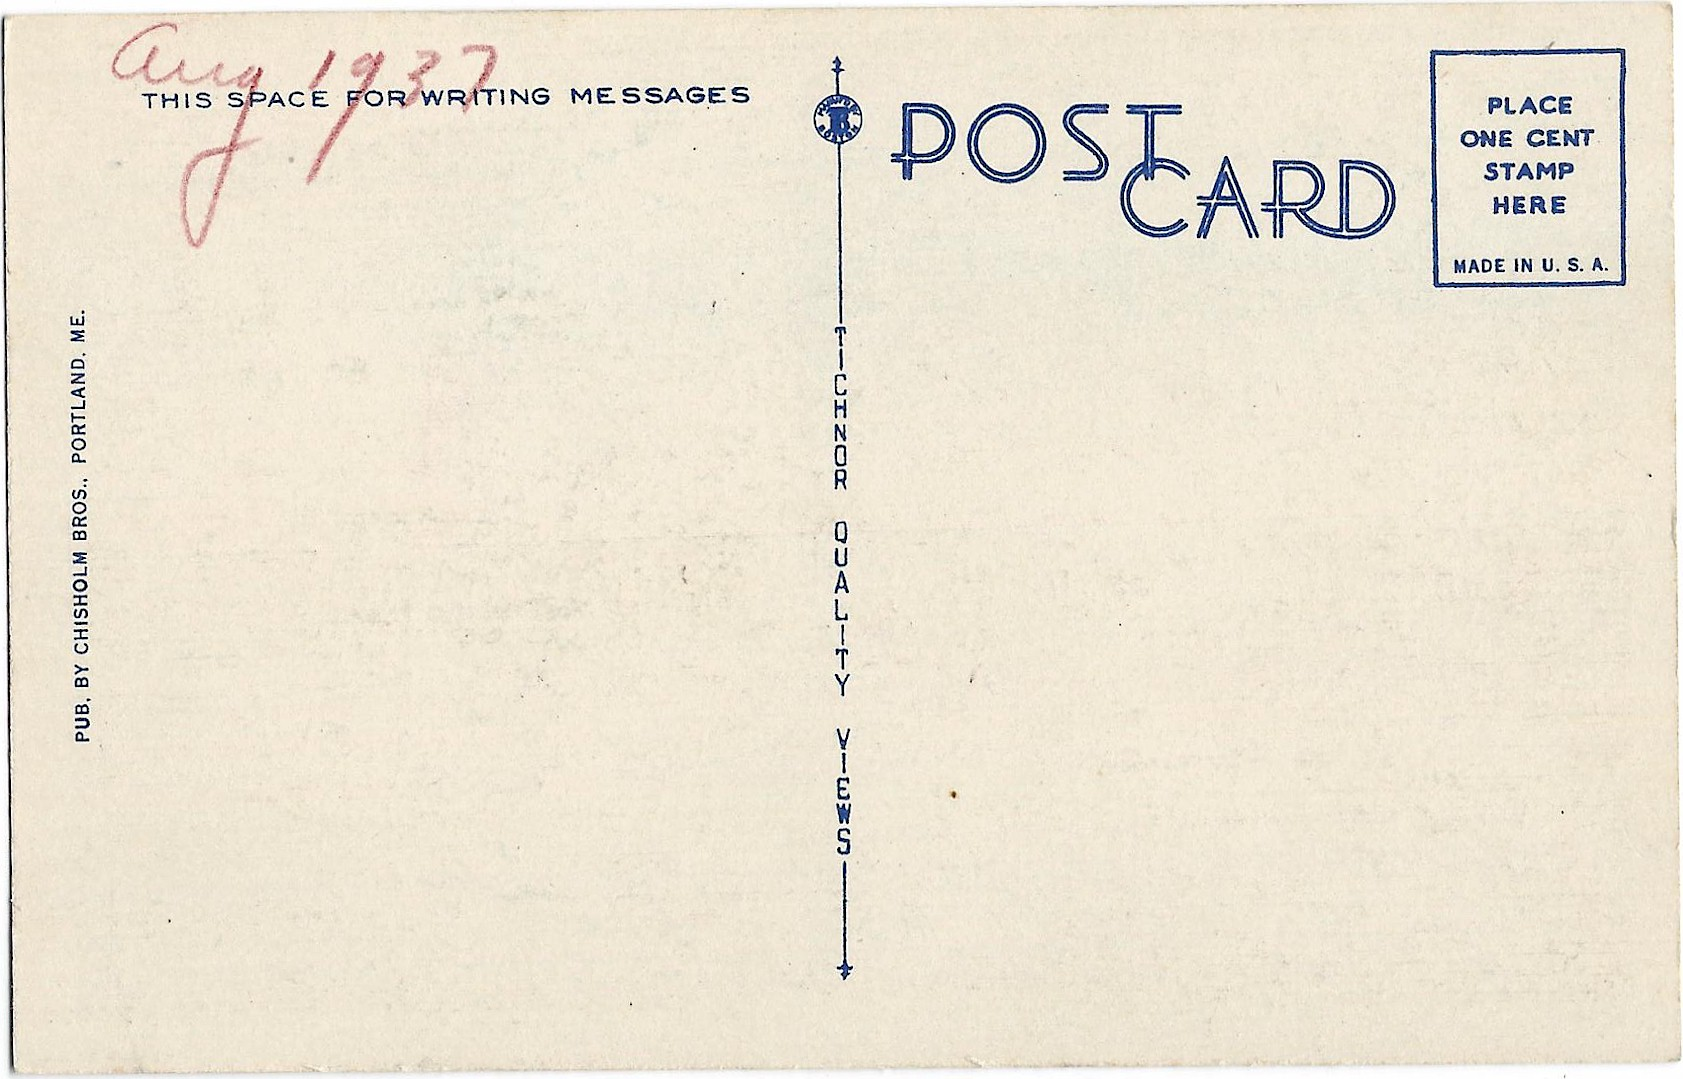 TWO LIGHTS & CAPE ELIZABETH LIFE SAVING STATION Postcard 46 - Click Image to Close